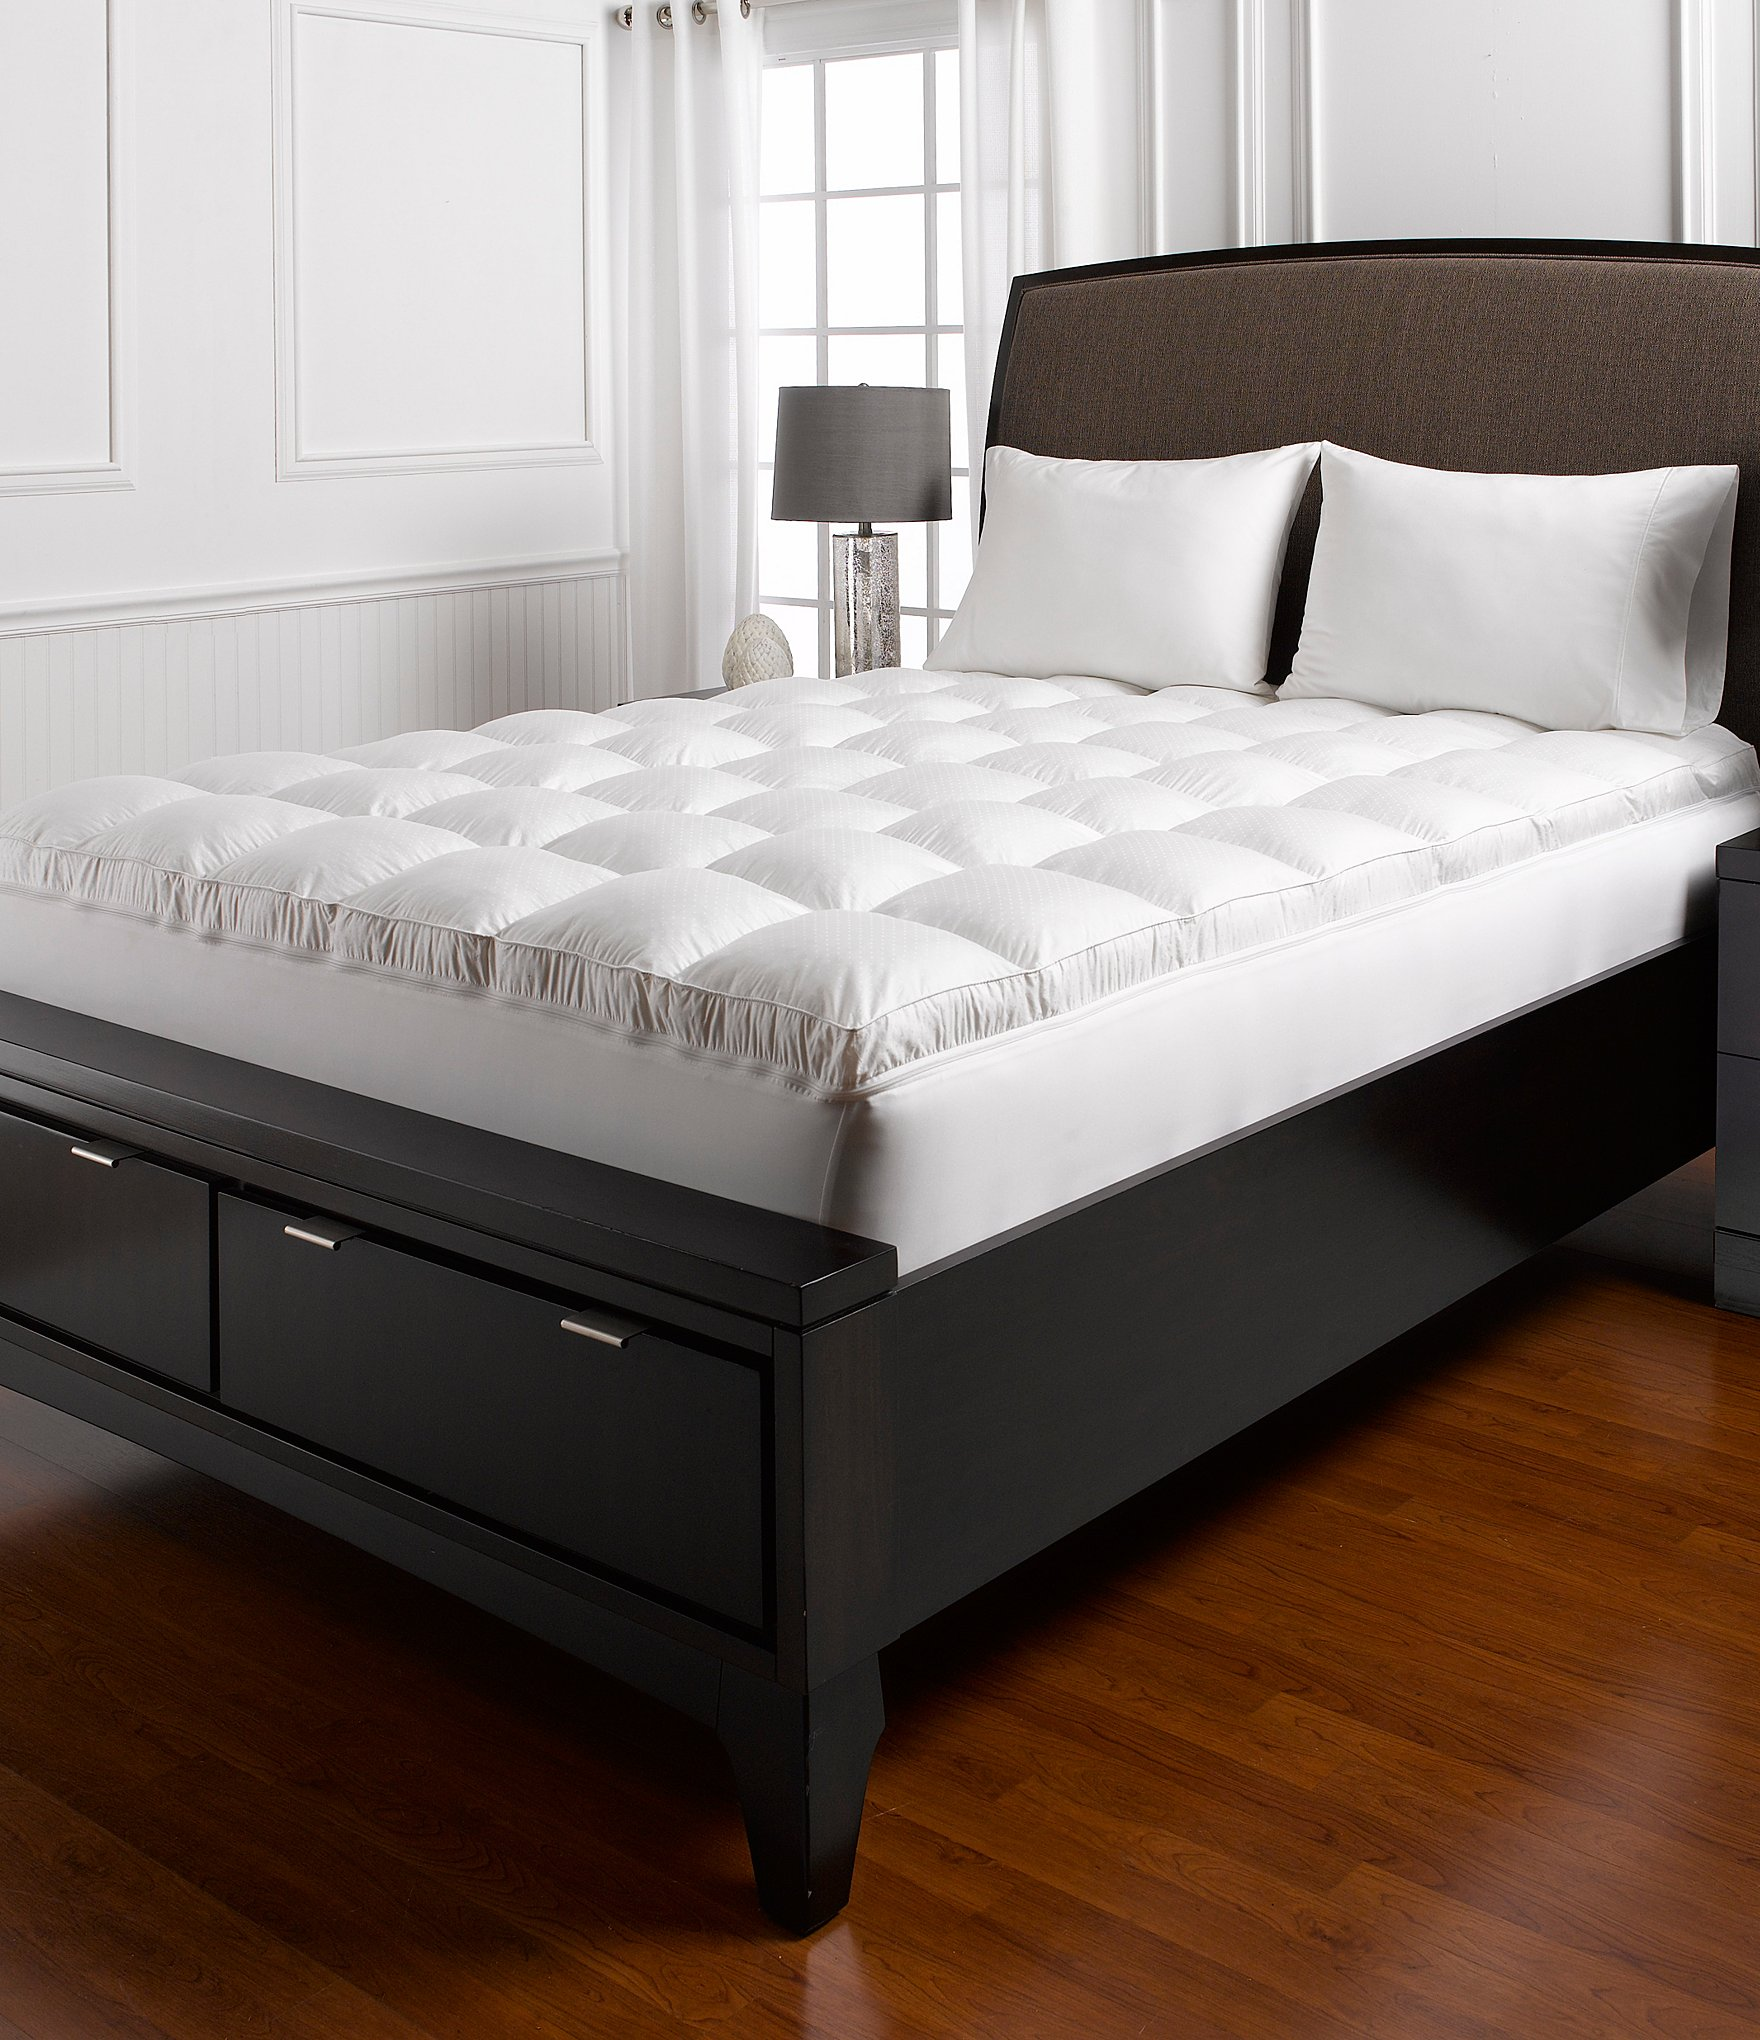 Southern Living Ultra Feather 500 Thread Count Mattress